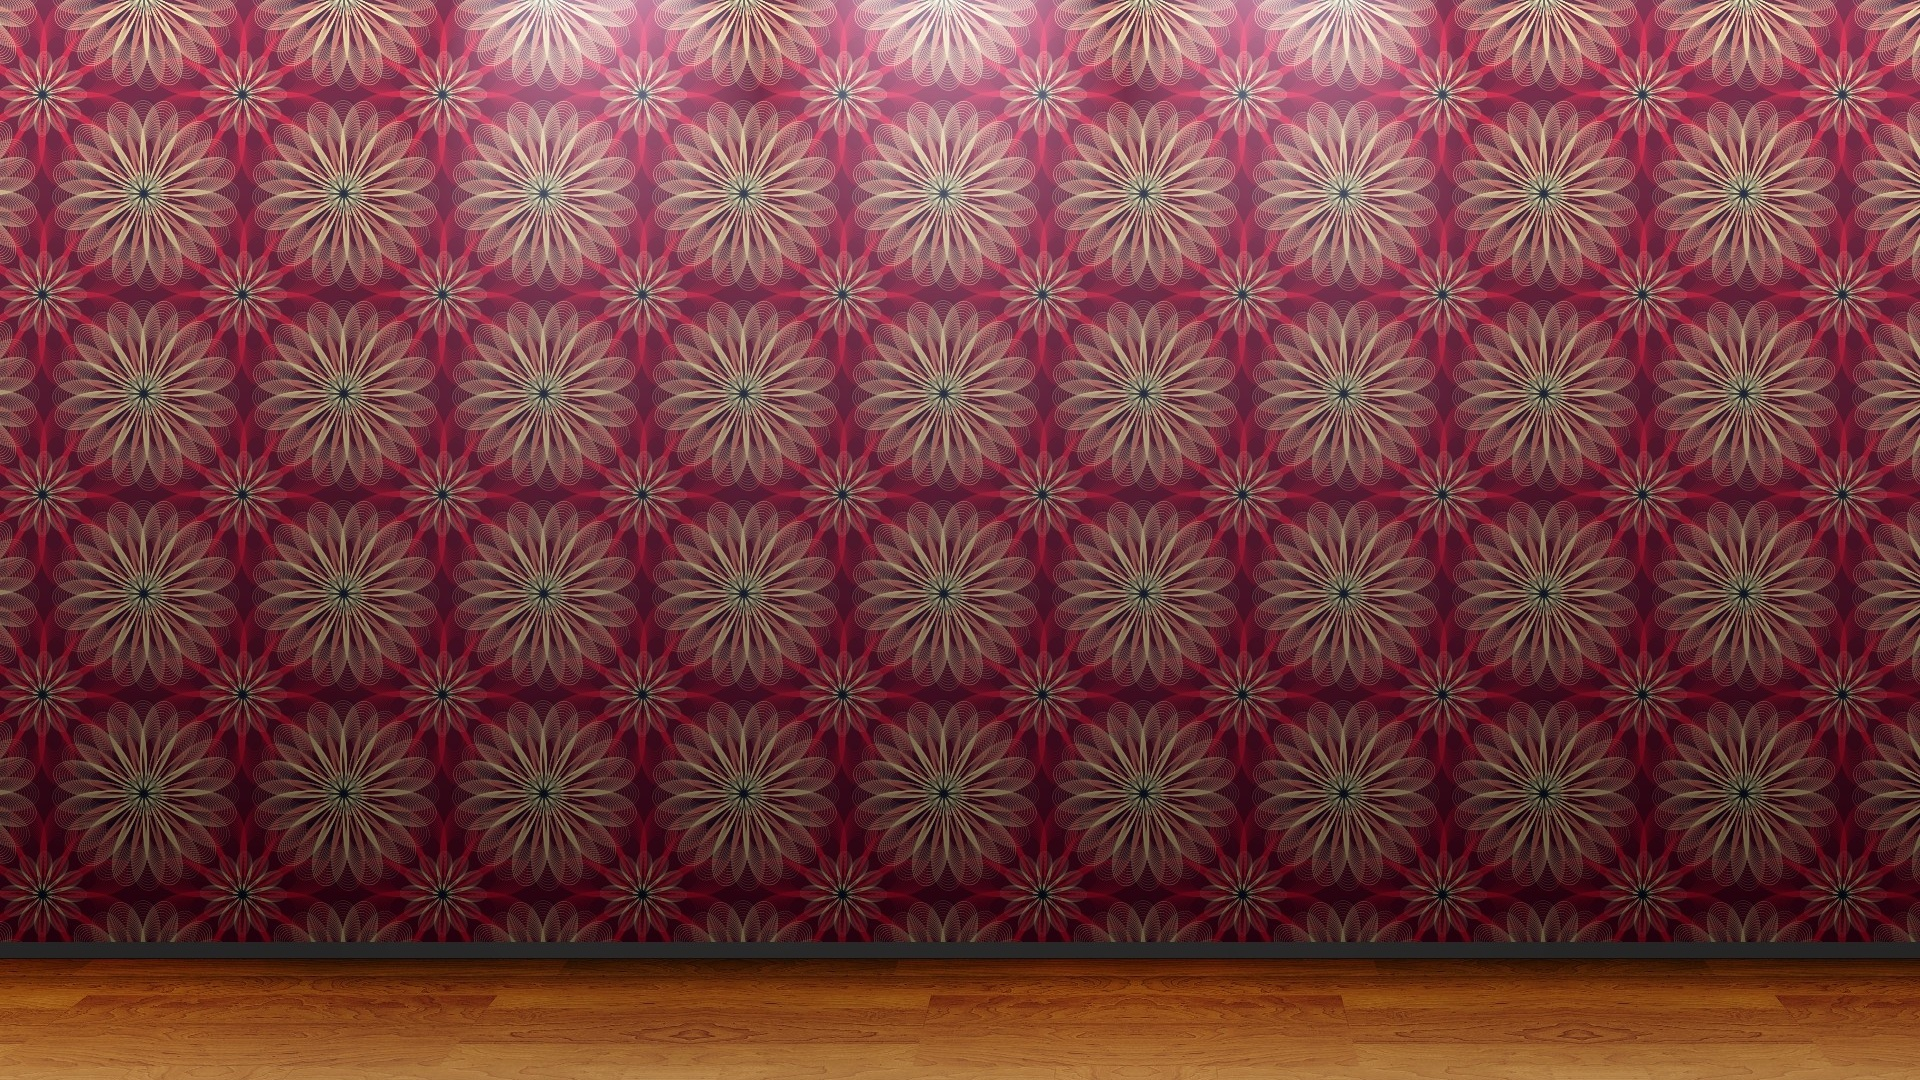 1920x1080 floral wall pattern desktop pc and mac wallpaper